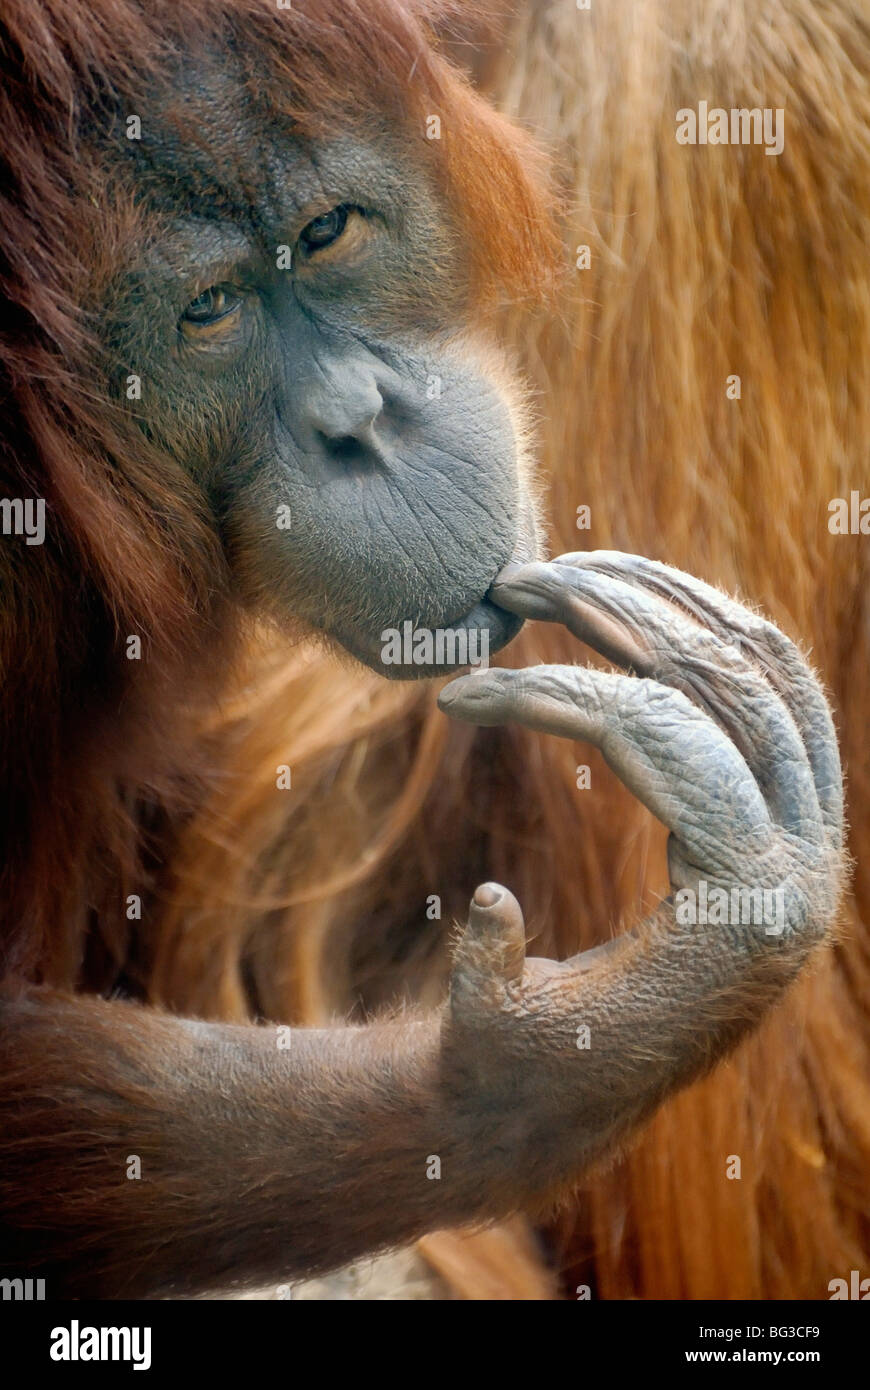 Bornean Orangutan / Pongo pygmaeus Stock Photo